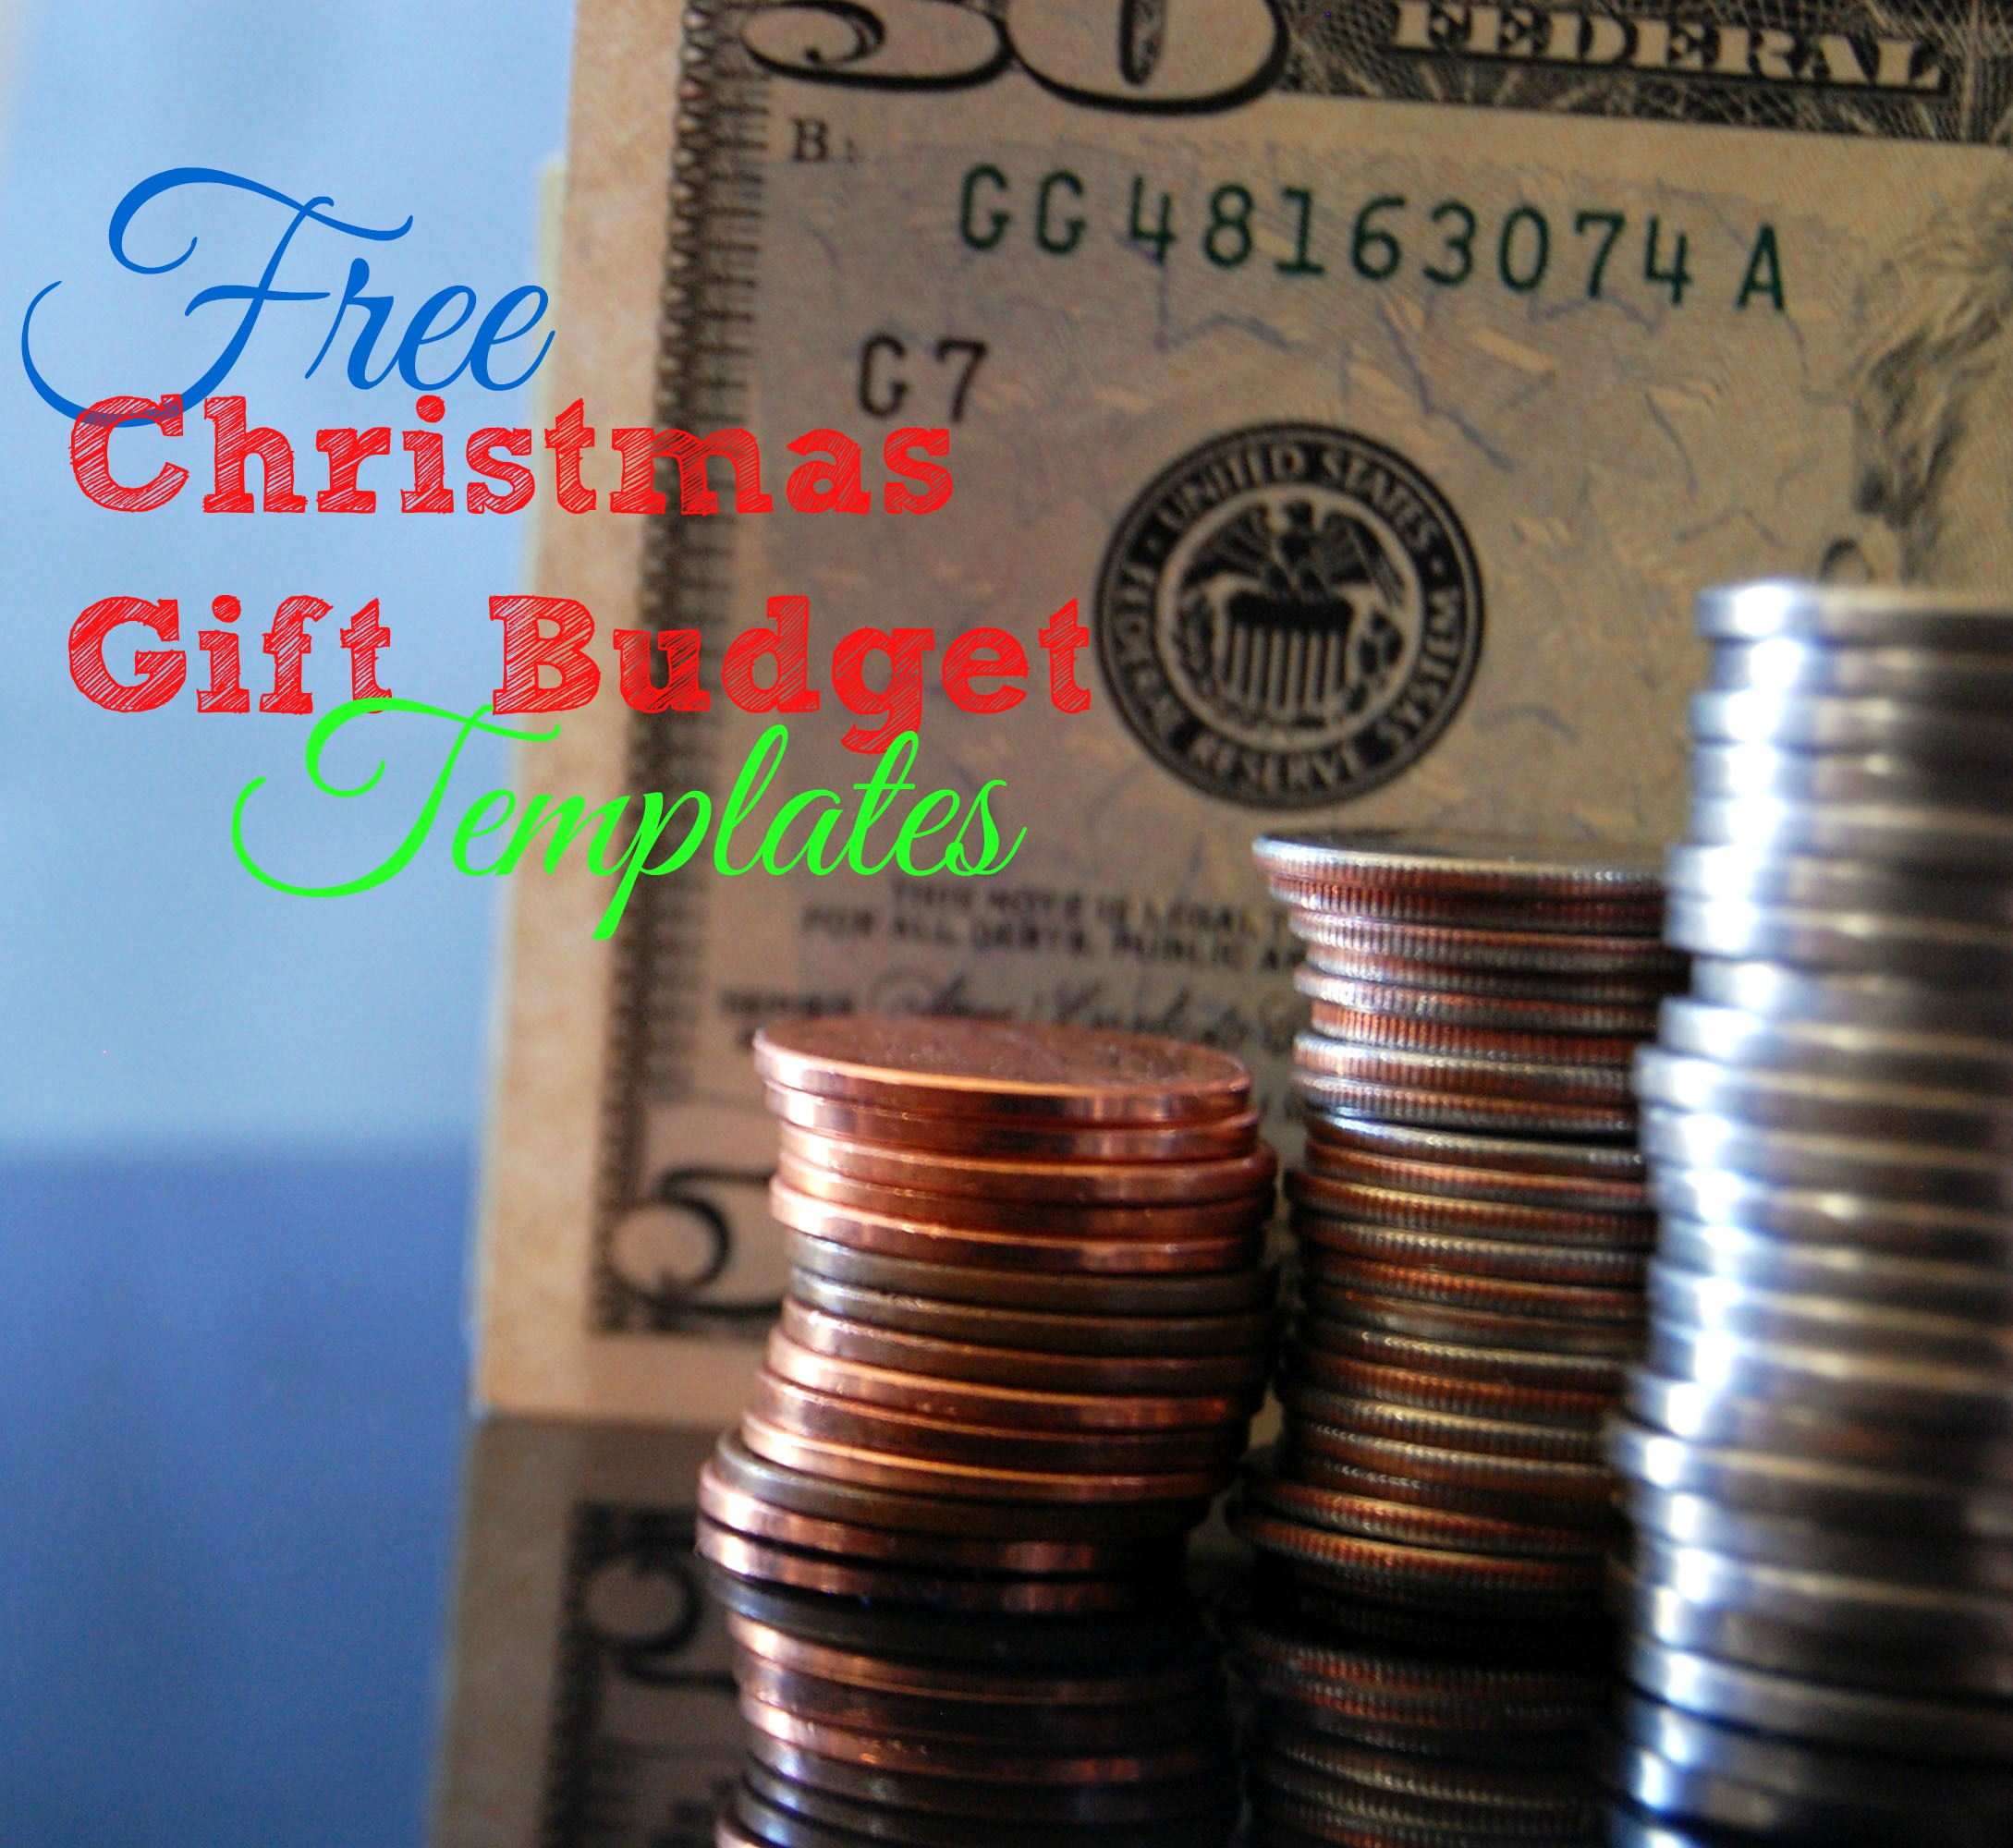 Free Christmas Gift Budget Templates to Download